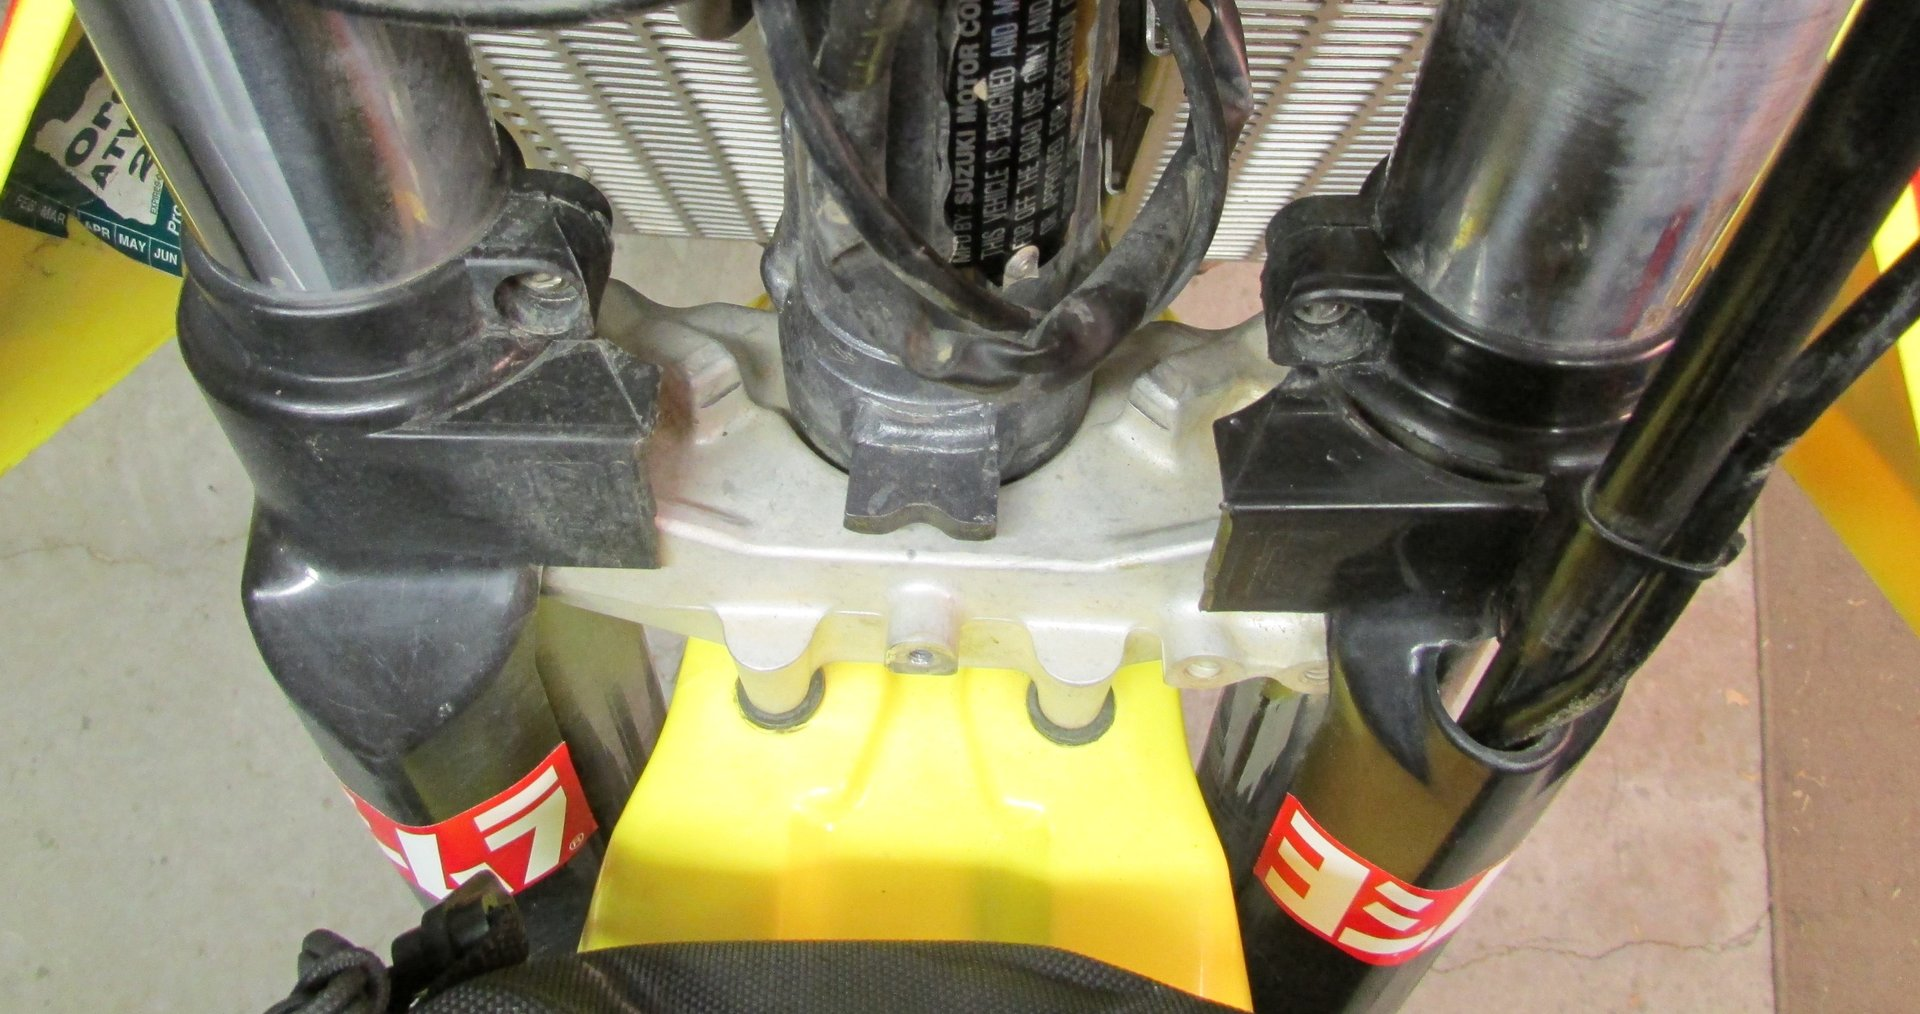 KTM Fork Protector Modification for the DRZ400 — Dual Sport Alchemy